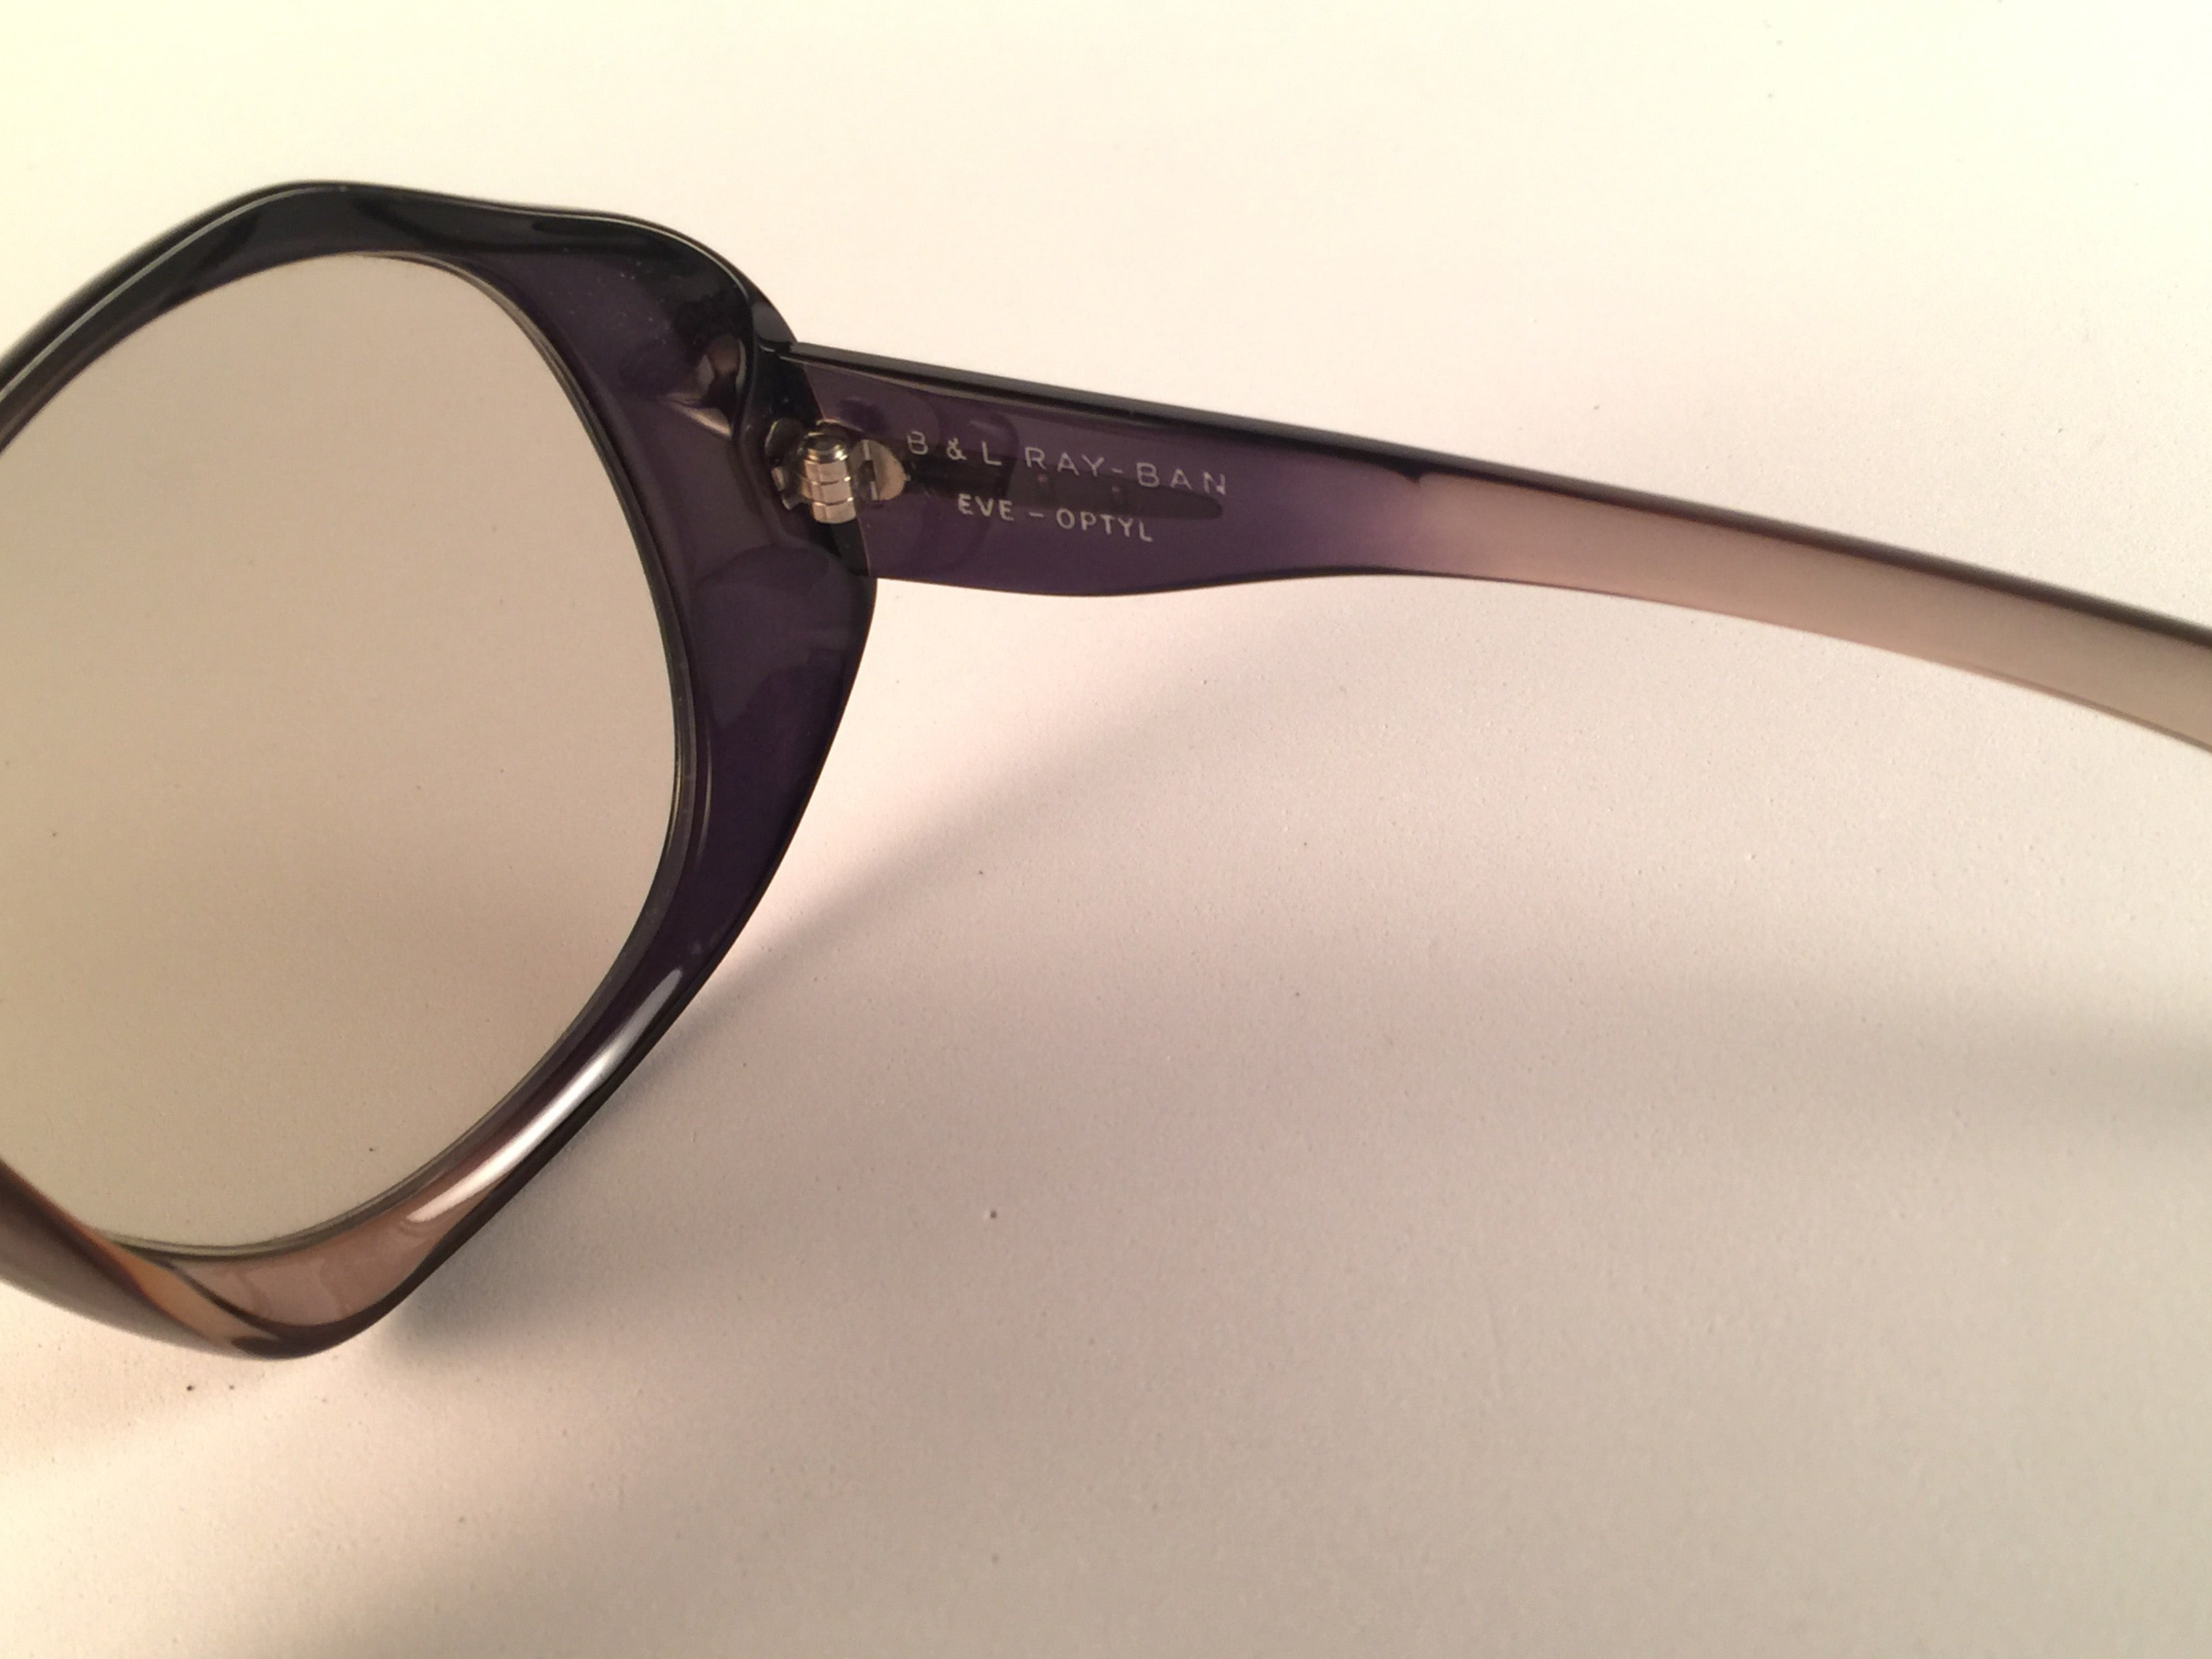 f51f24f29a9a7 New Ray Ban Oversized Eve Clear Lenses B L USA Sunglasses For Sale at  1stdibs